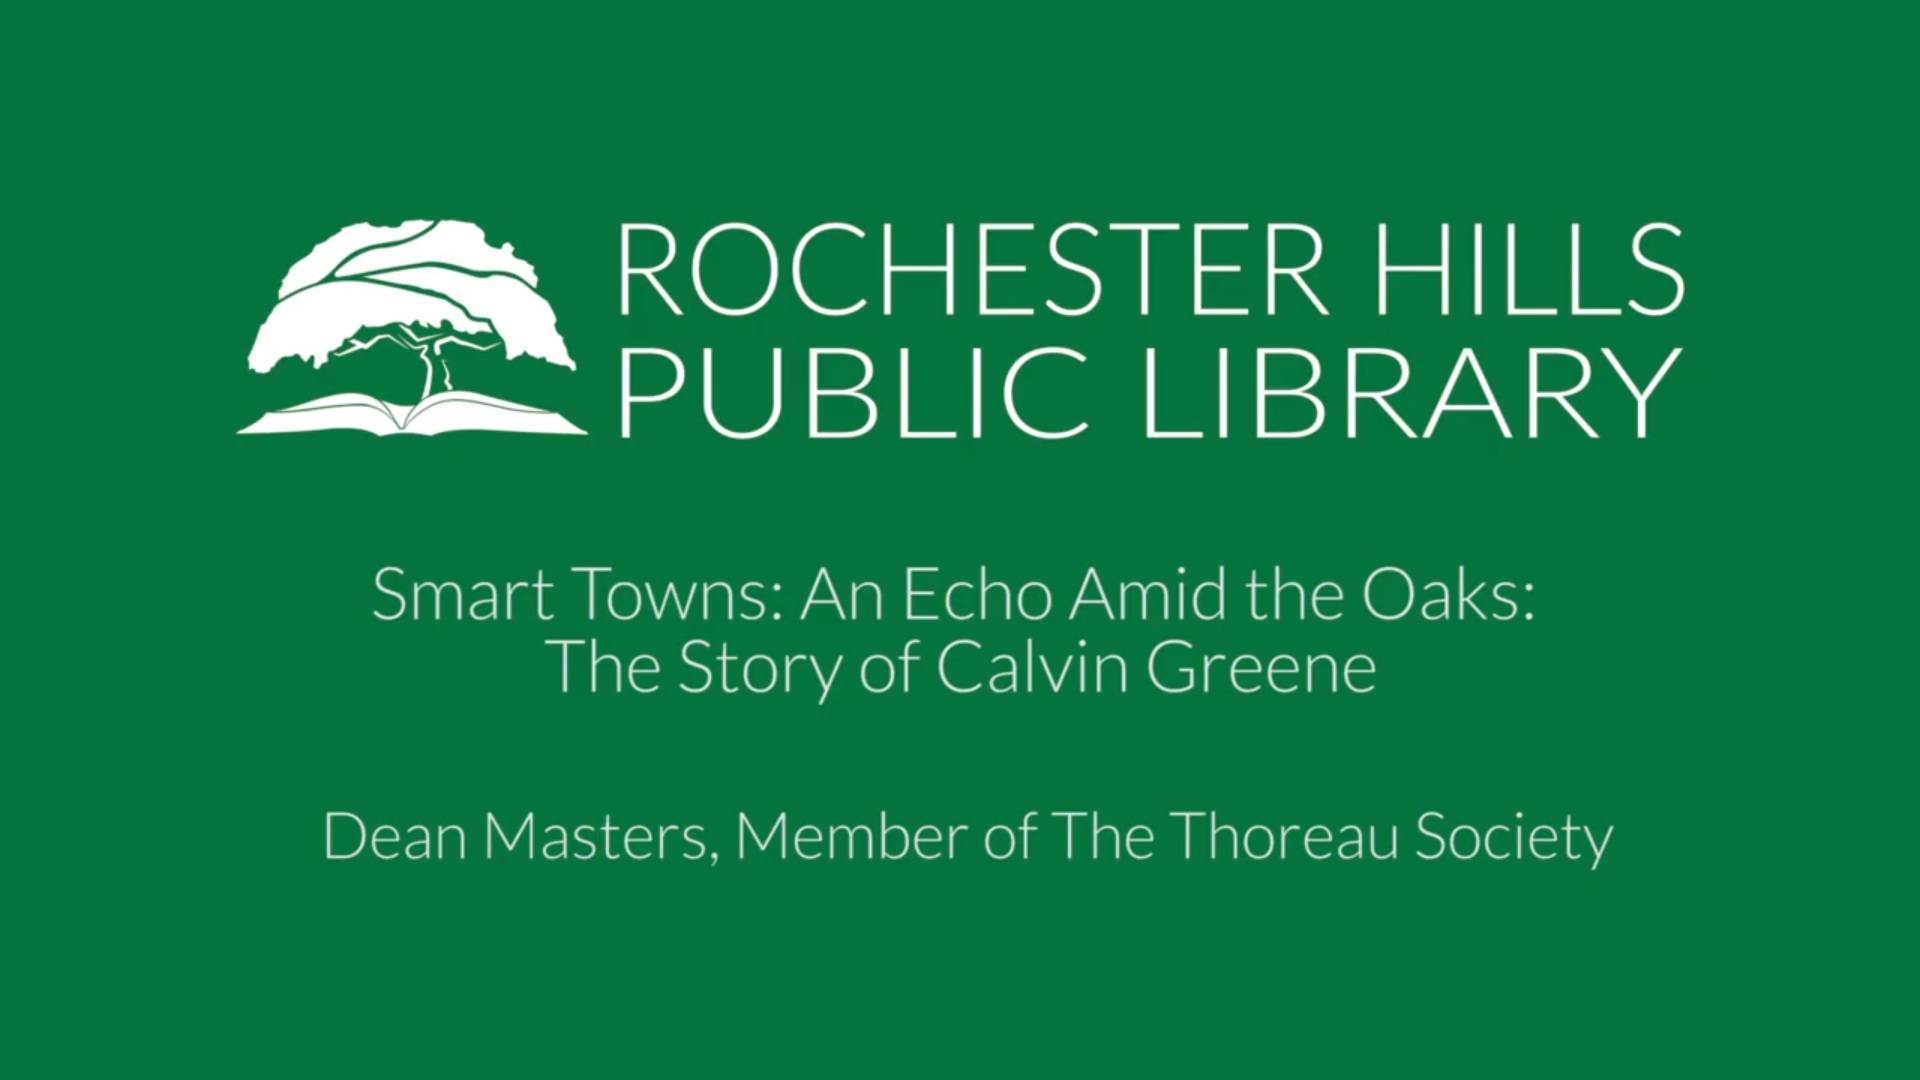 Smart Towns: An Echo Amid the Oaks: The Story of Calvin Greene